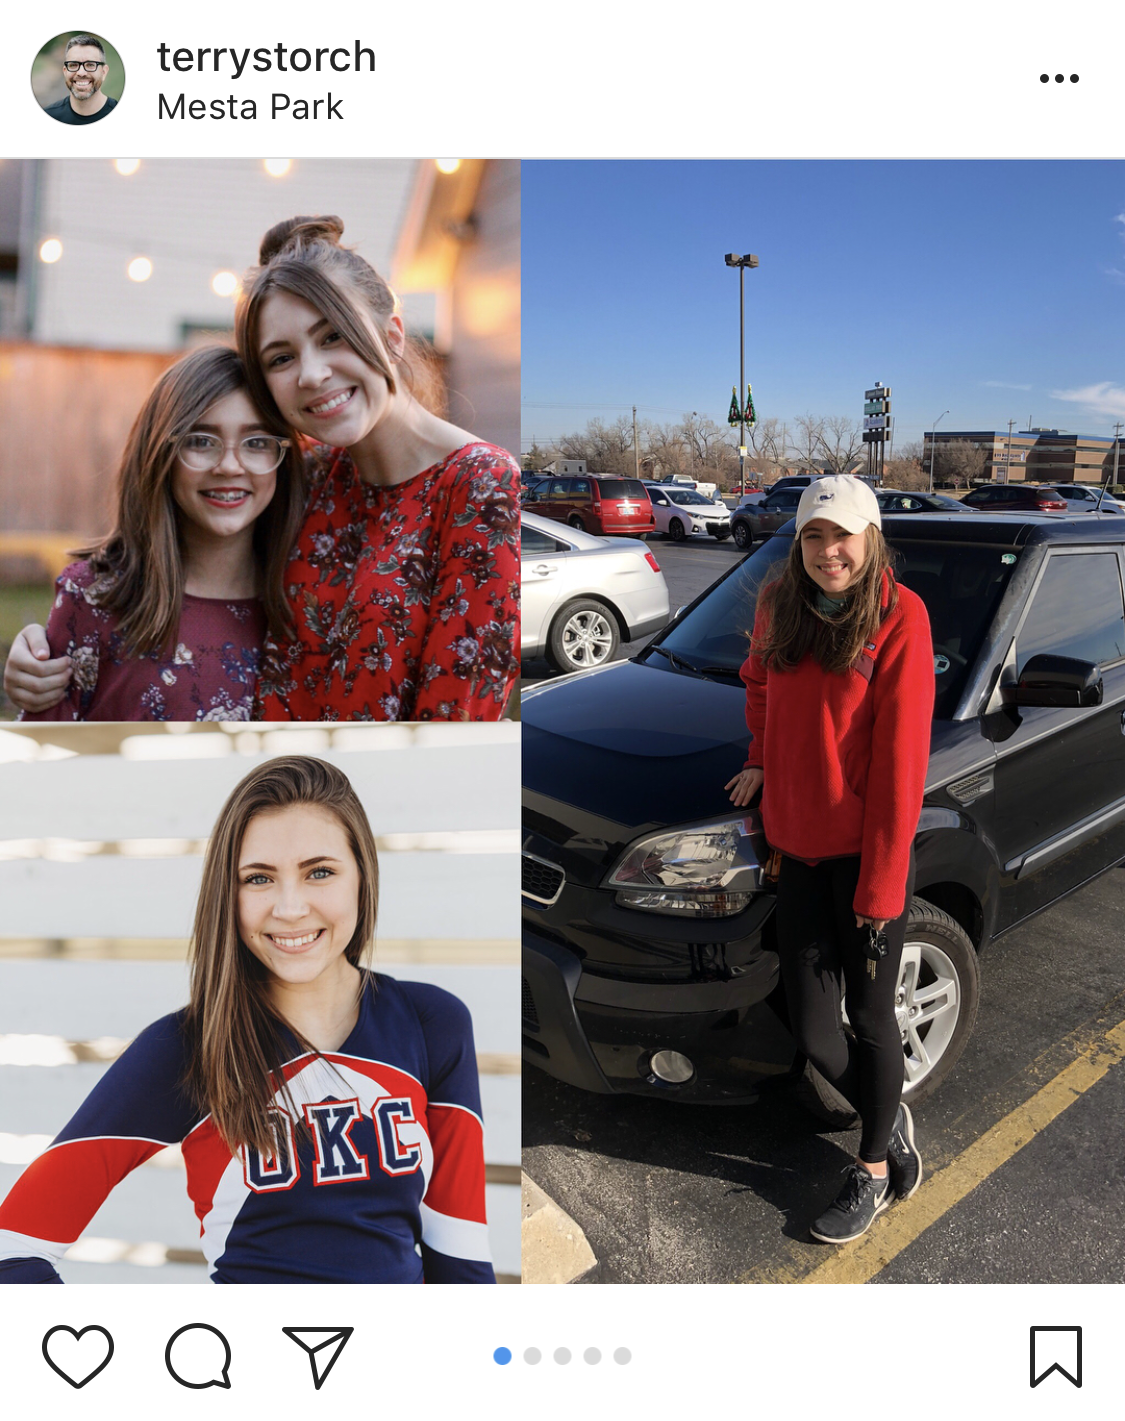 Sweet 16  - Reia turned 16 this year and bought her first car with cash money! I don't have the words to express how proud I am not only of her and her accomplishments but more importantly her growth and development. Reia is a young lady who follows Jesus in a wonderful way.